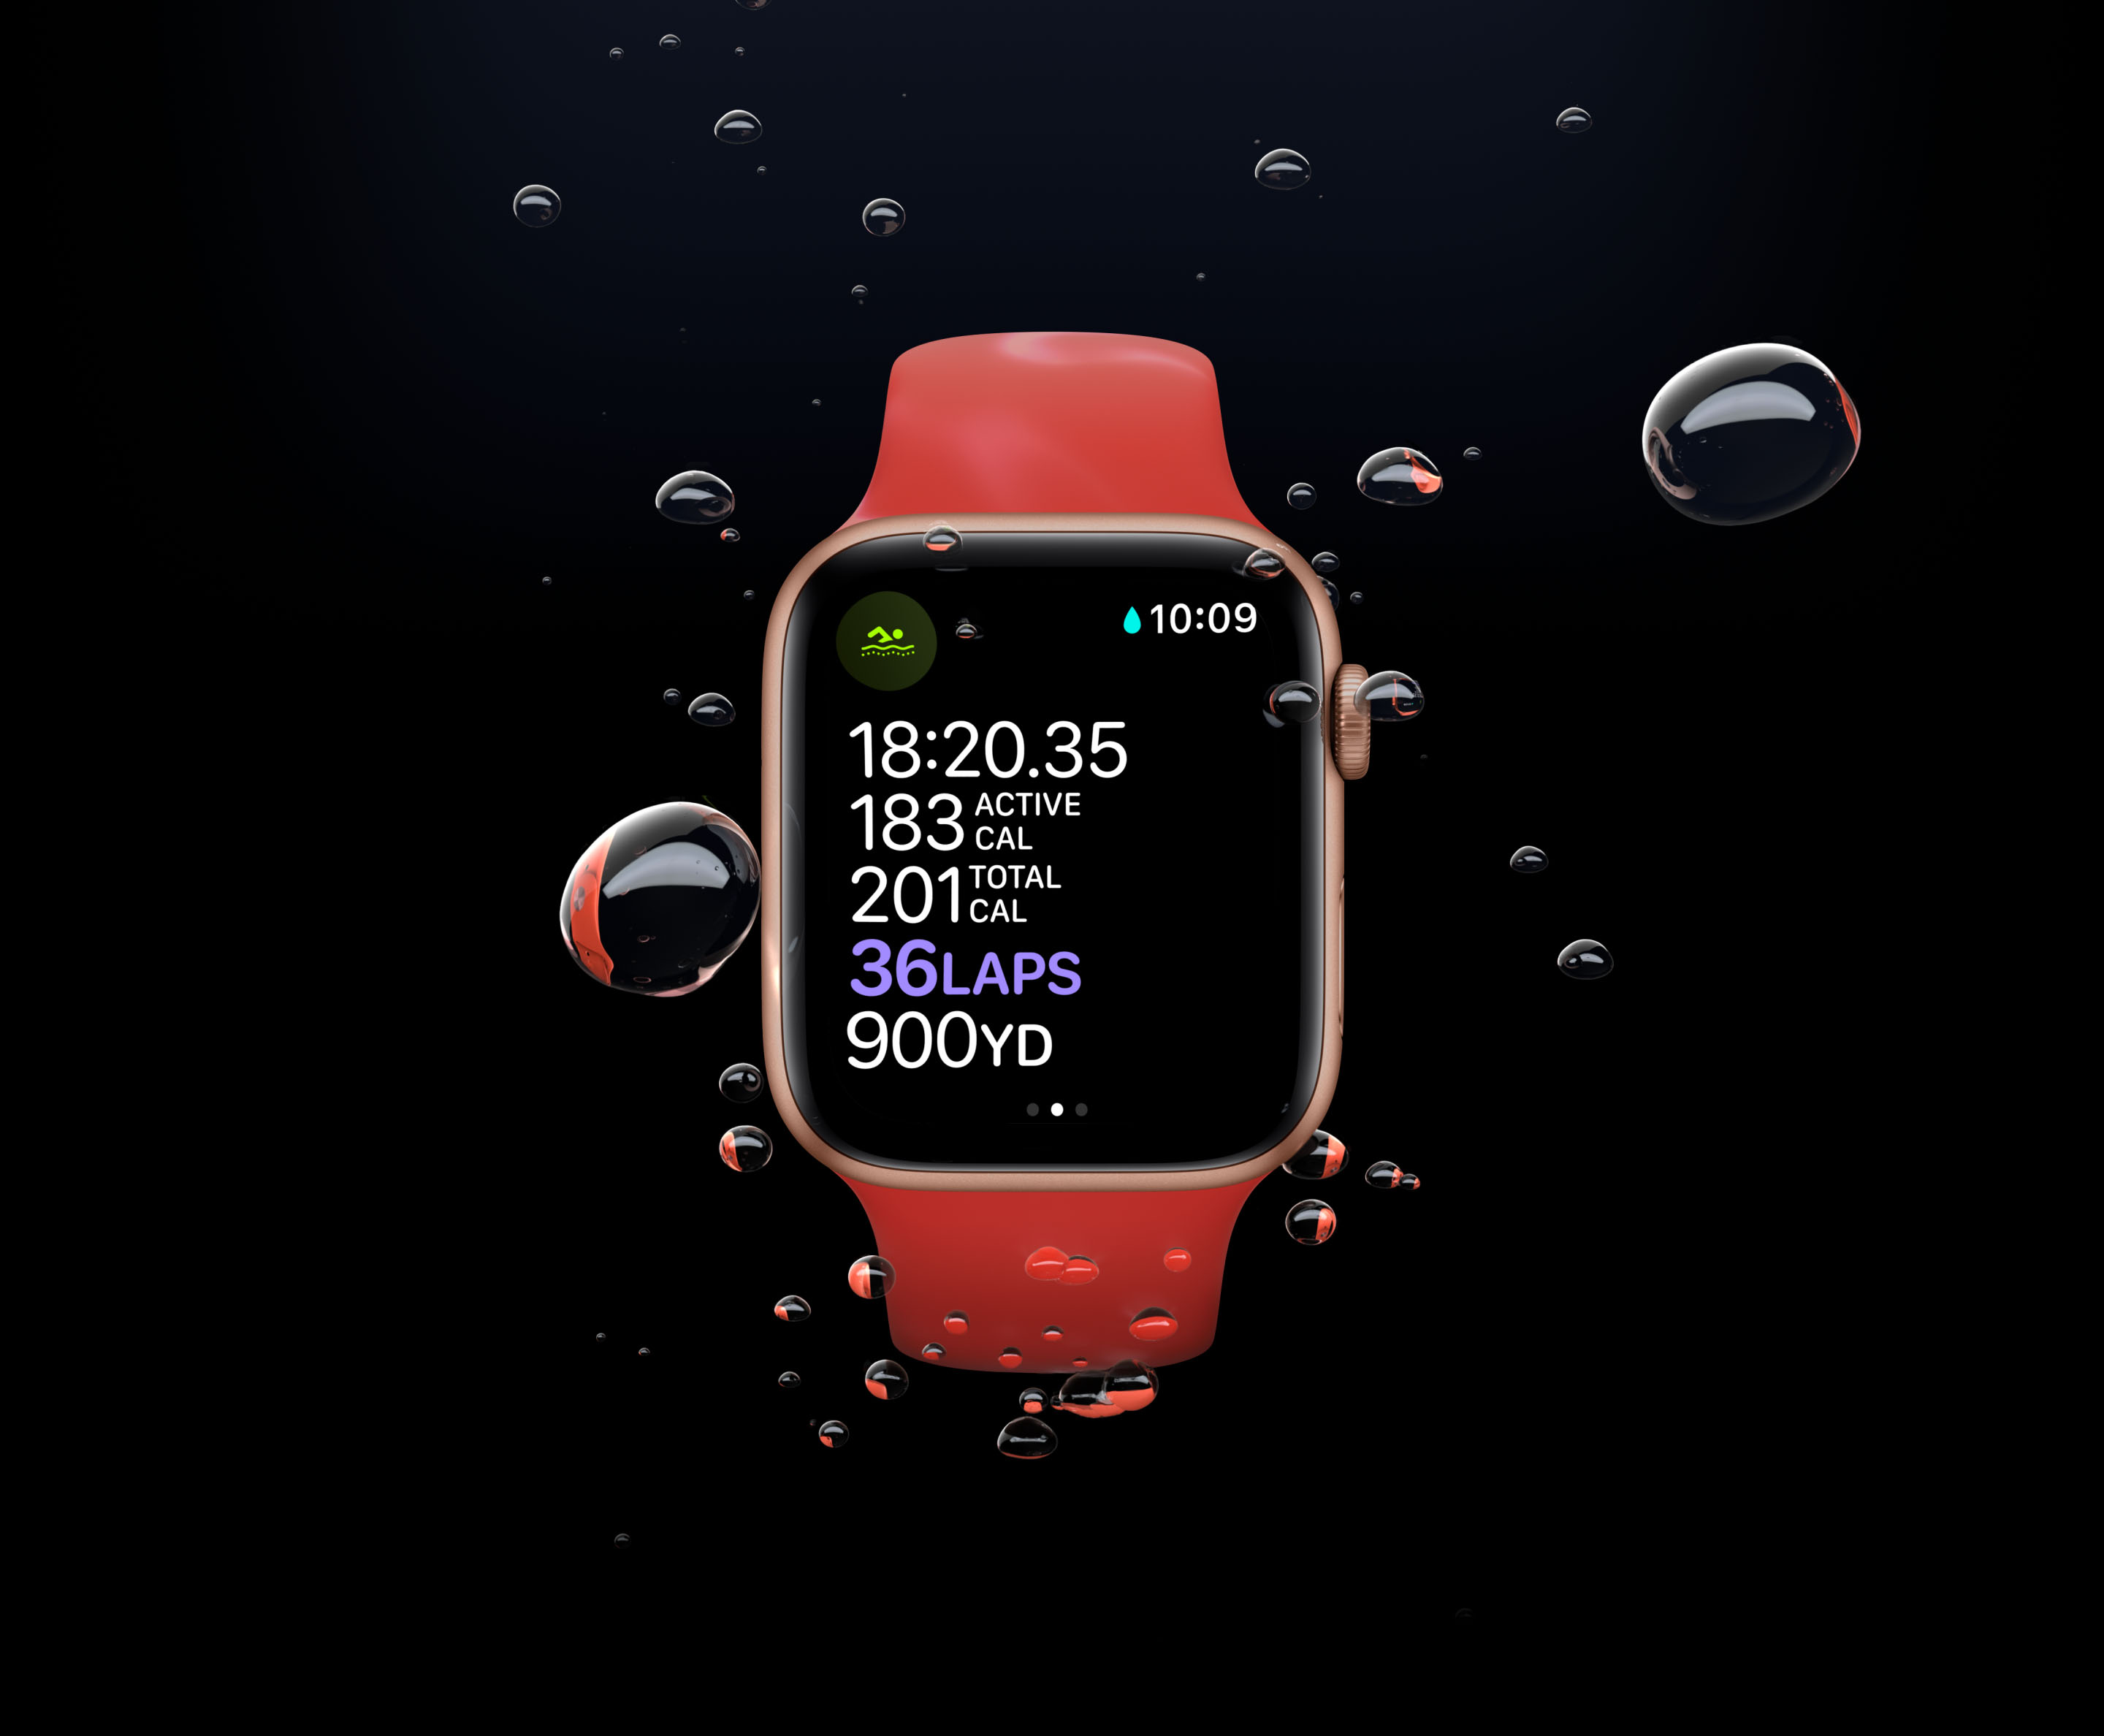 Apple Watch Series 6 Fitness Display